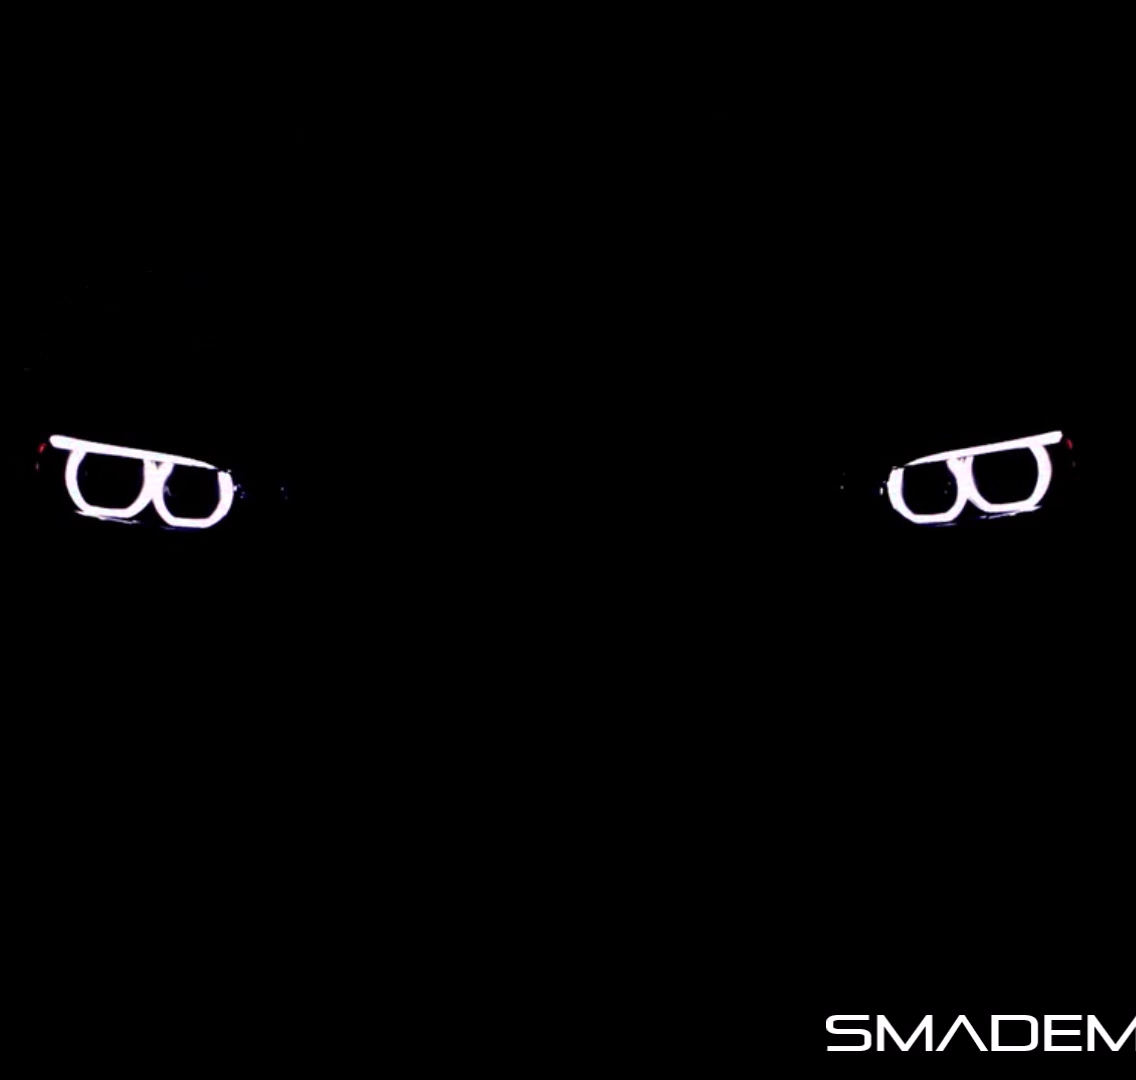 BMW M3 and M4 Teasers - (4) SMADEMEDIA Galleria